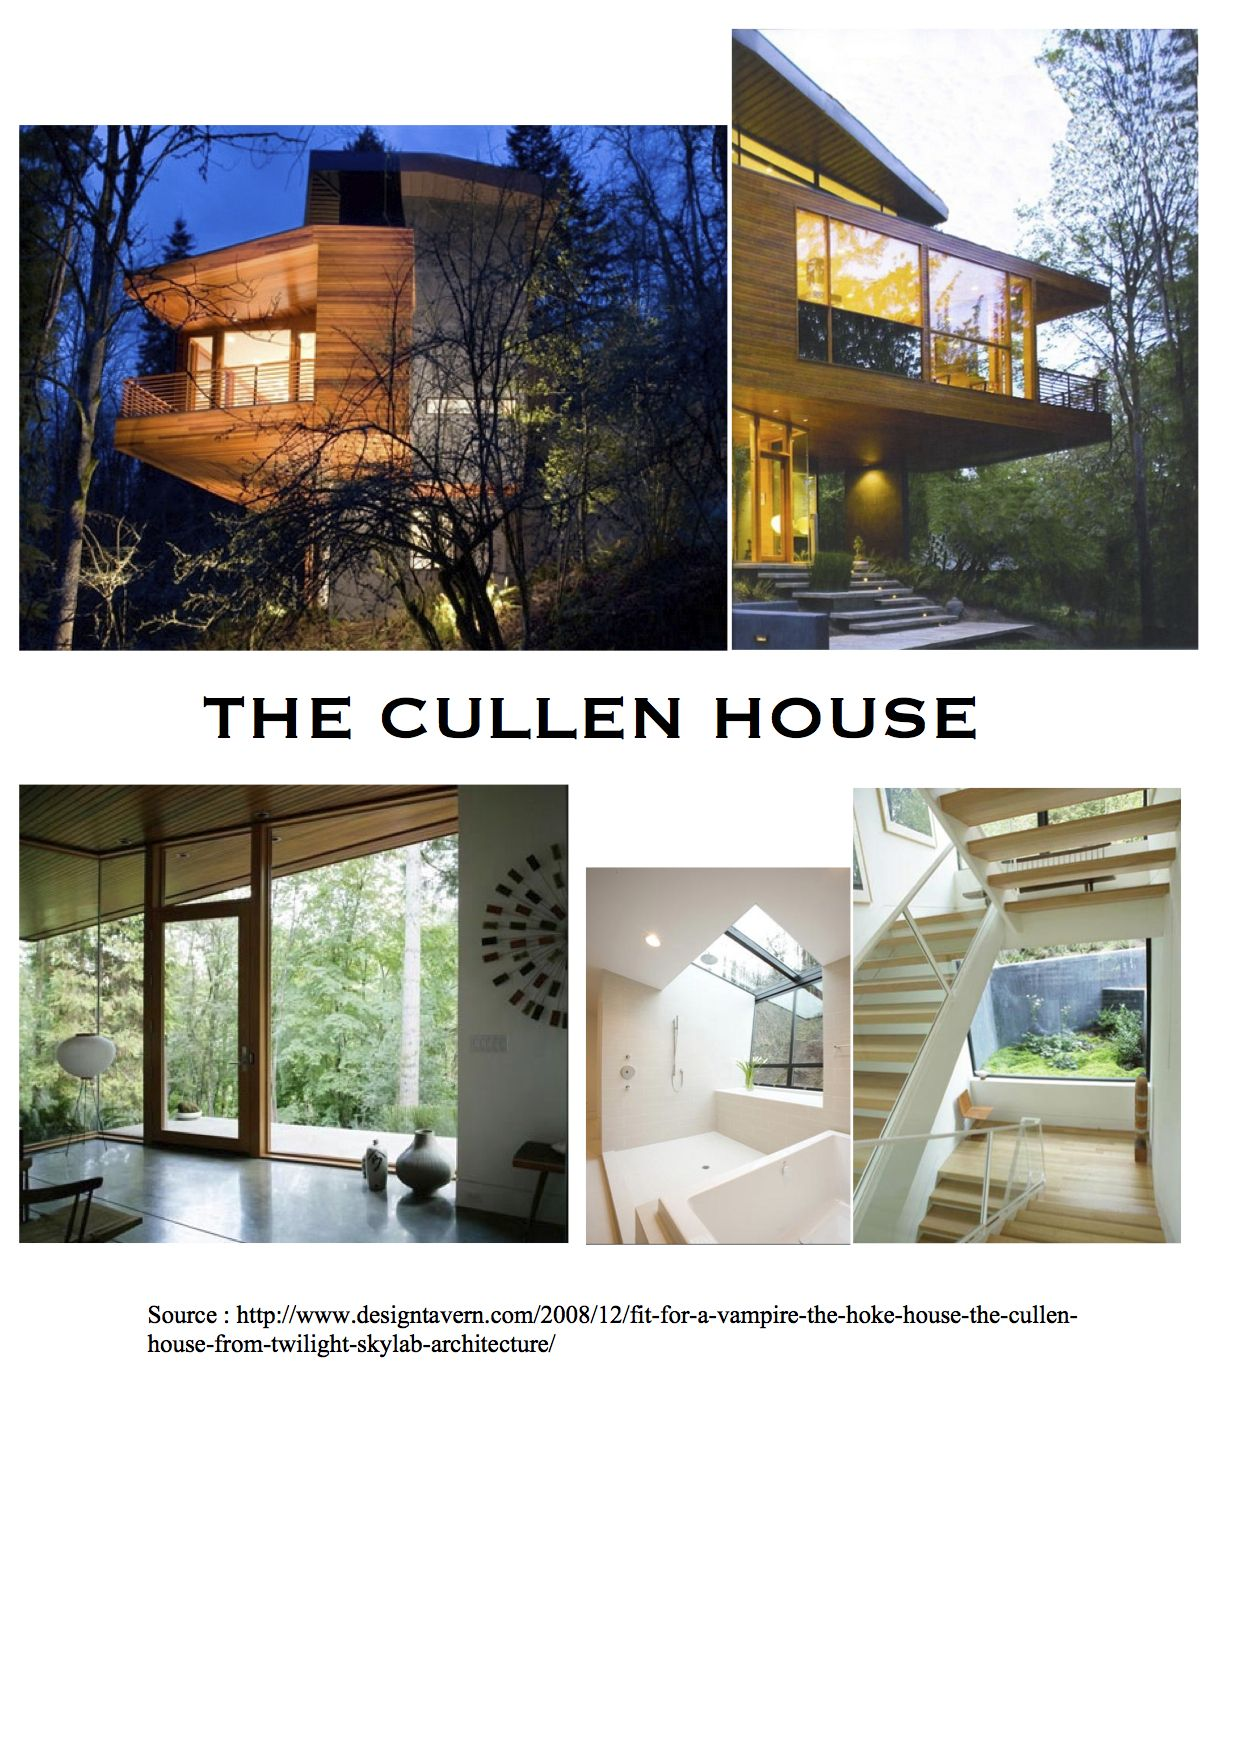 Cullen House (Twilight) Source: http://www.designtavern.com/2008 ...